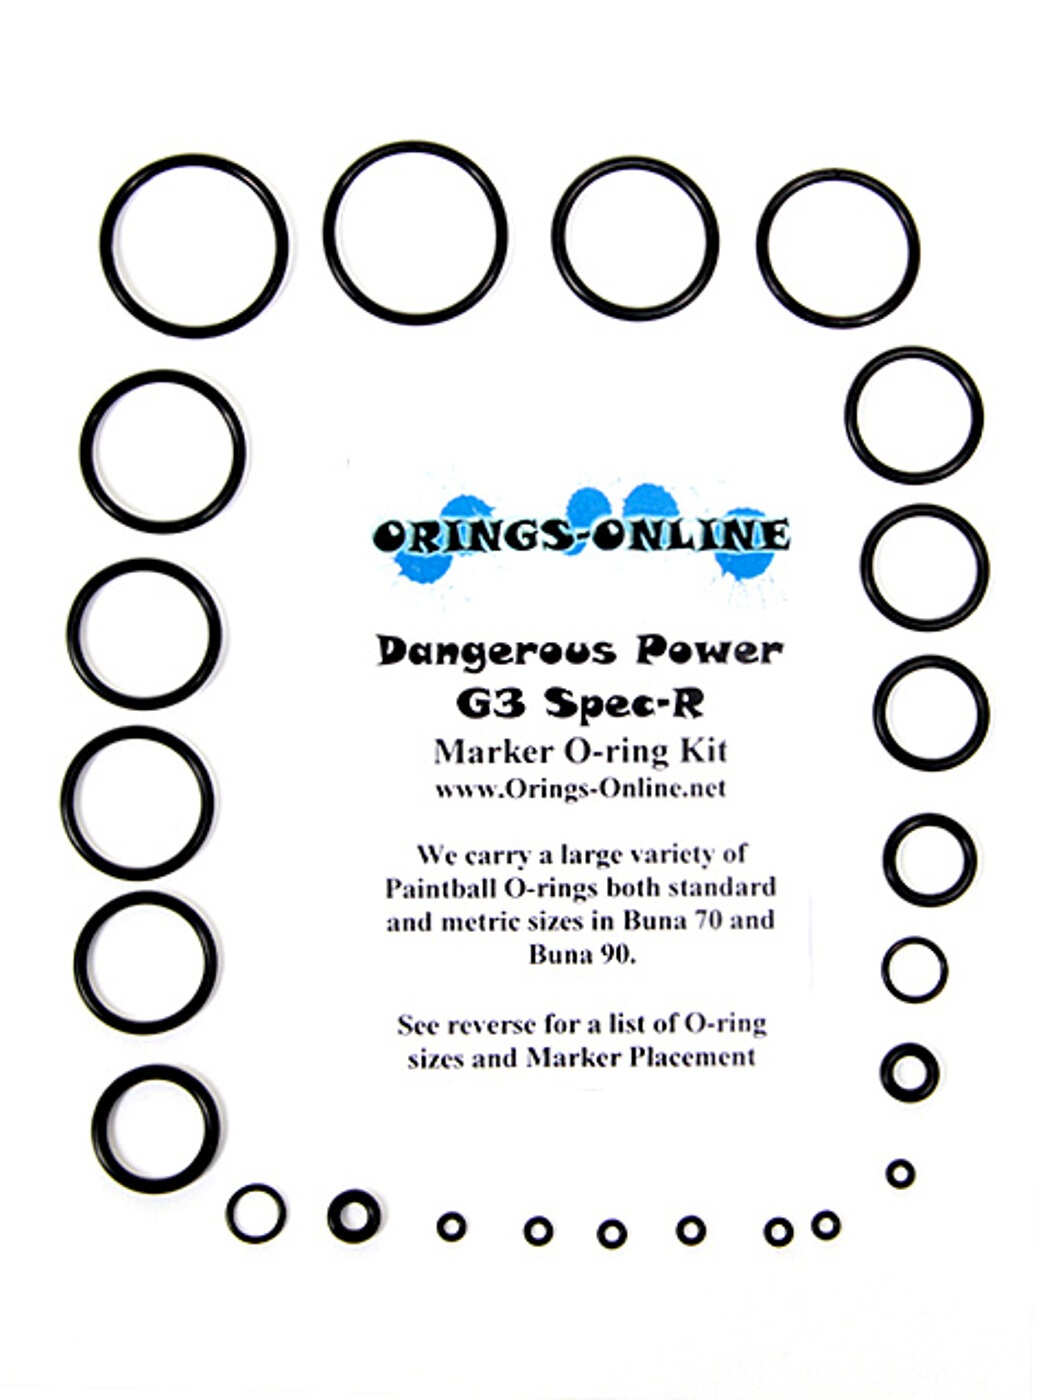 Dangerous Power G3 Spec-R Marker O-ring Kit